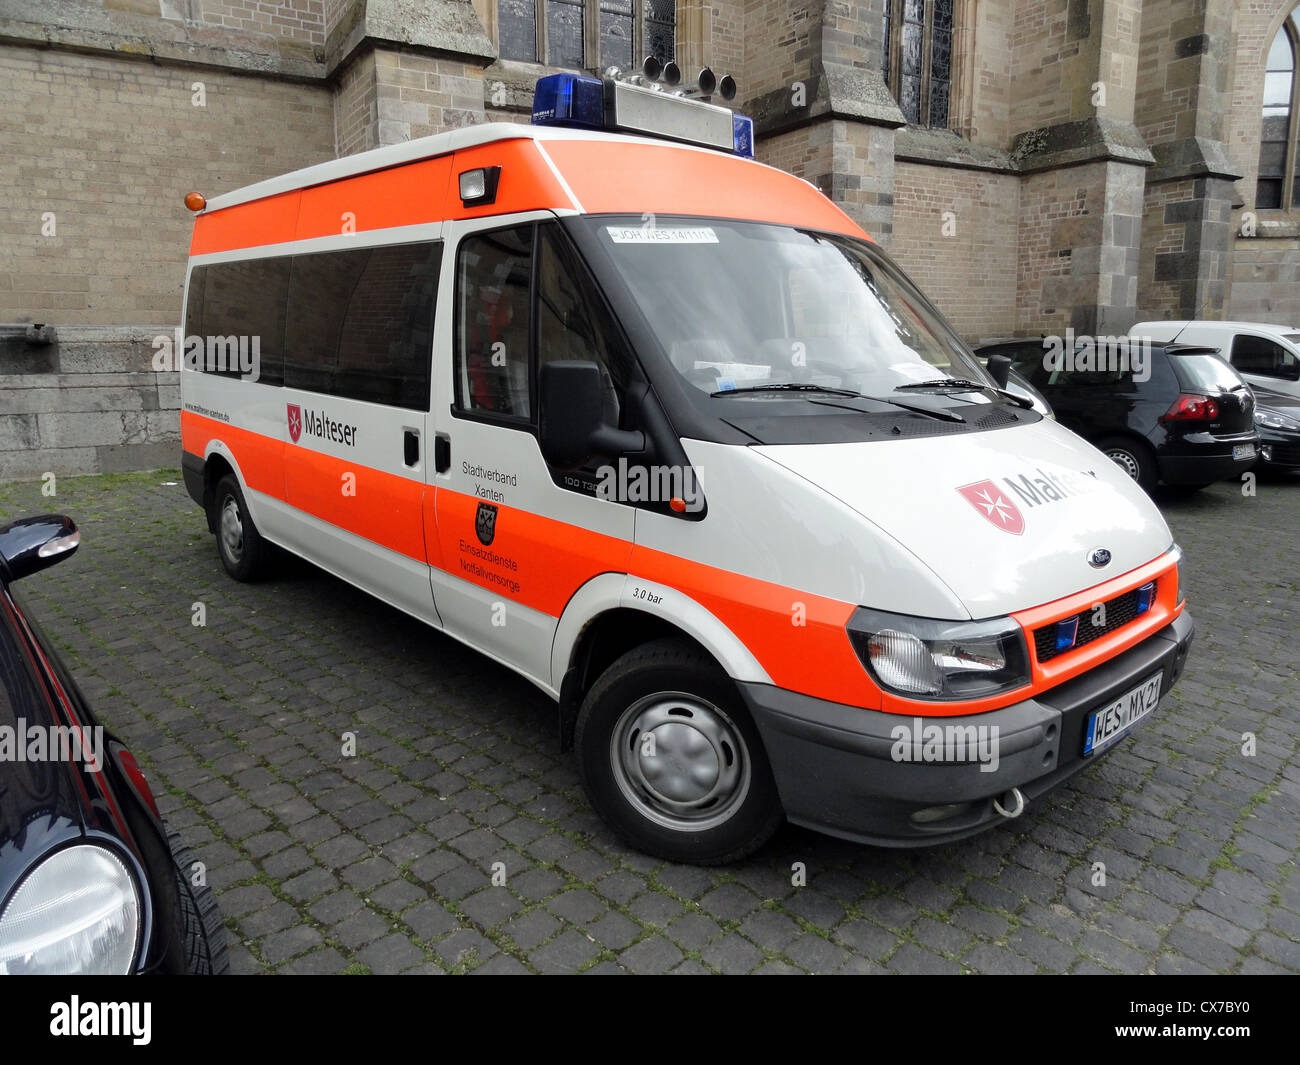 Malteser Ford 100 T300 Ambulanse, Stadverband Xanten - Stock Image